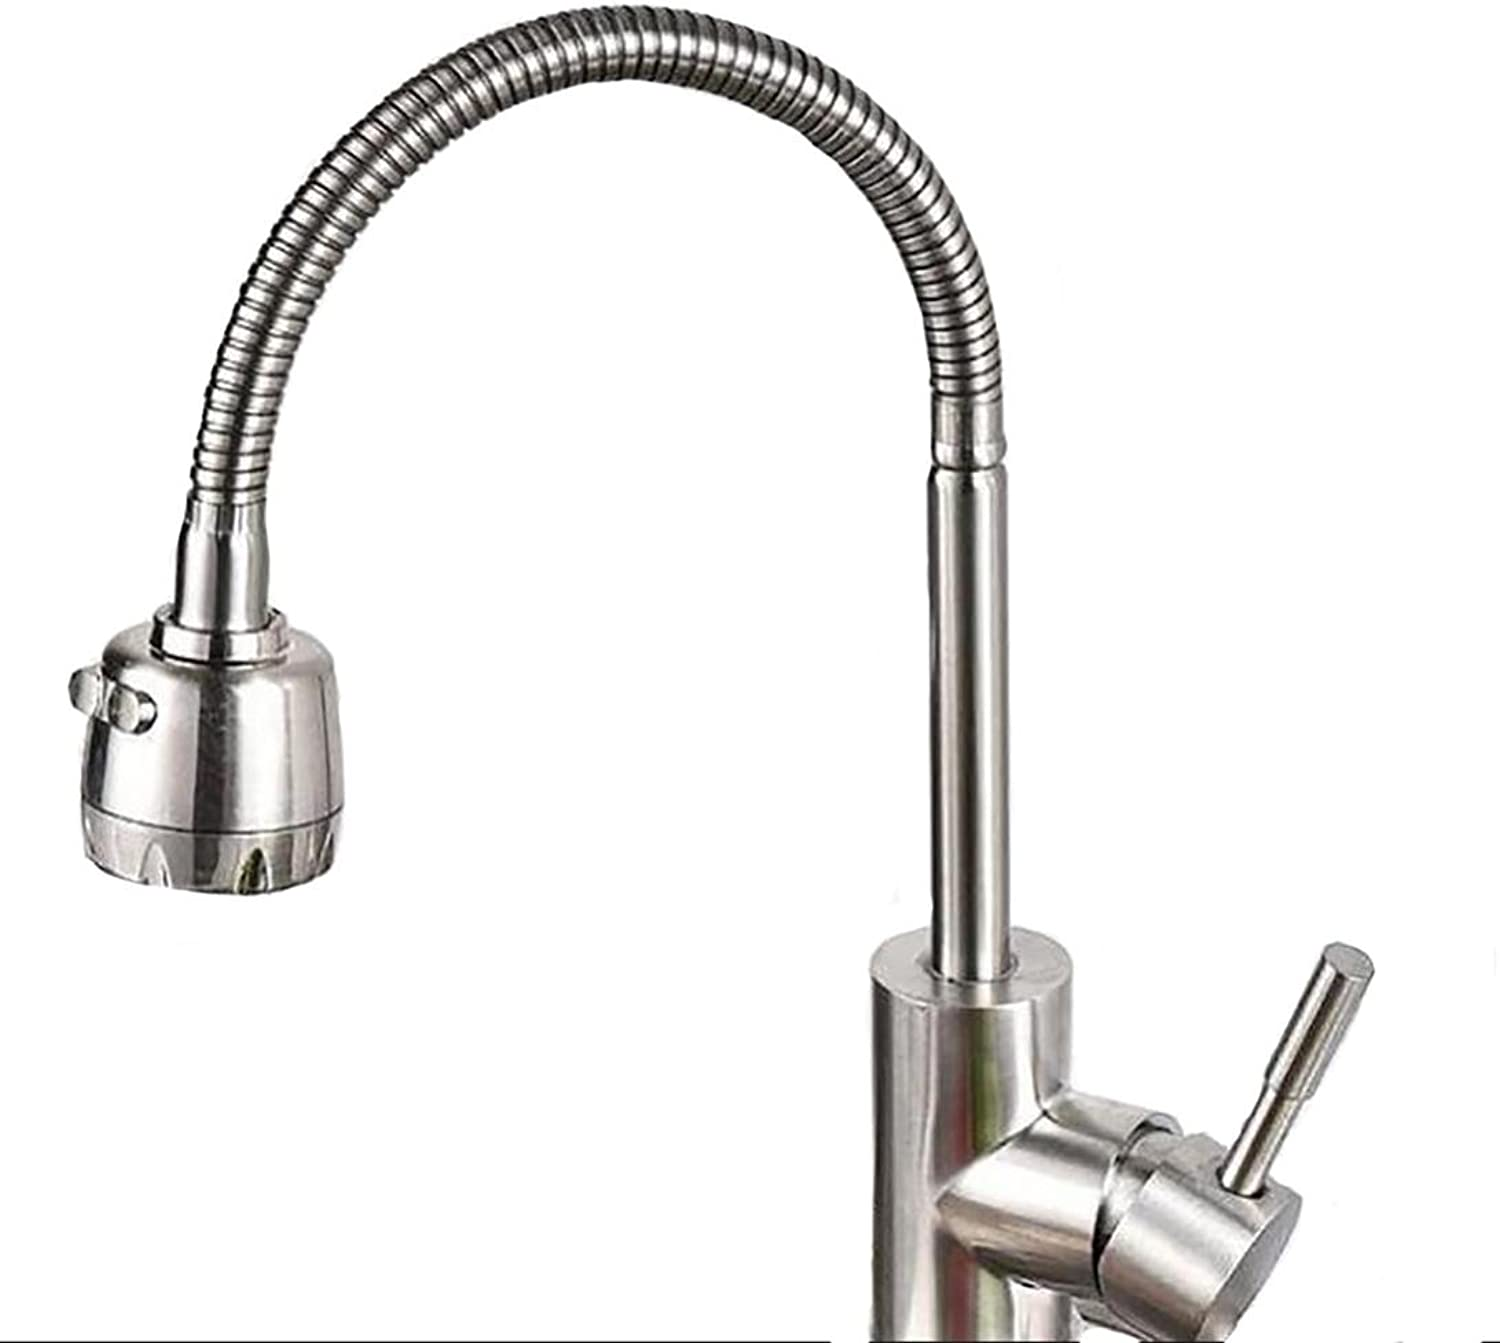 SHIQUNC Kitchen faucets, stainless steel 304, universal redating, hot and cold water, greenical